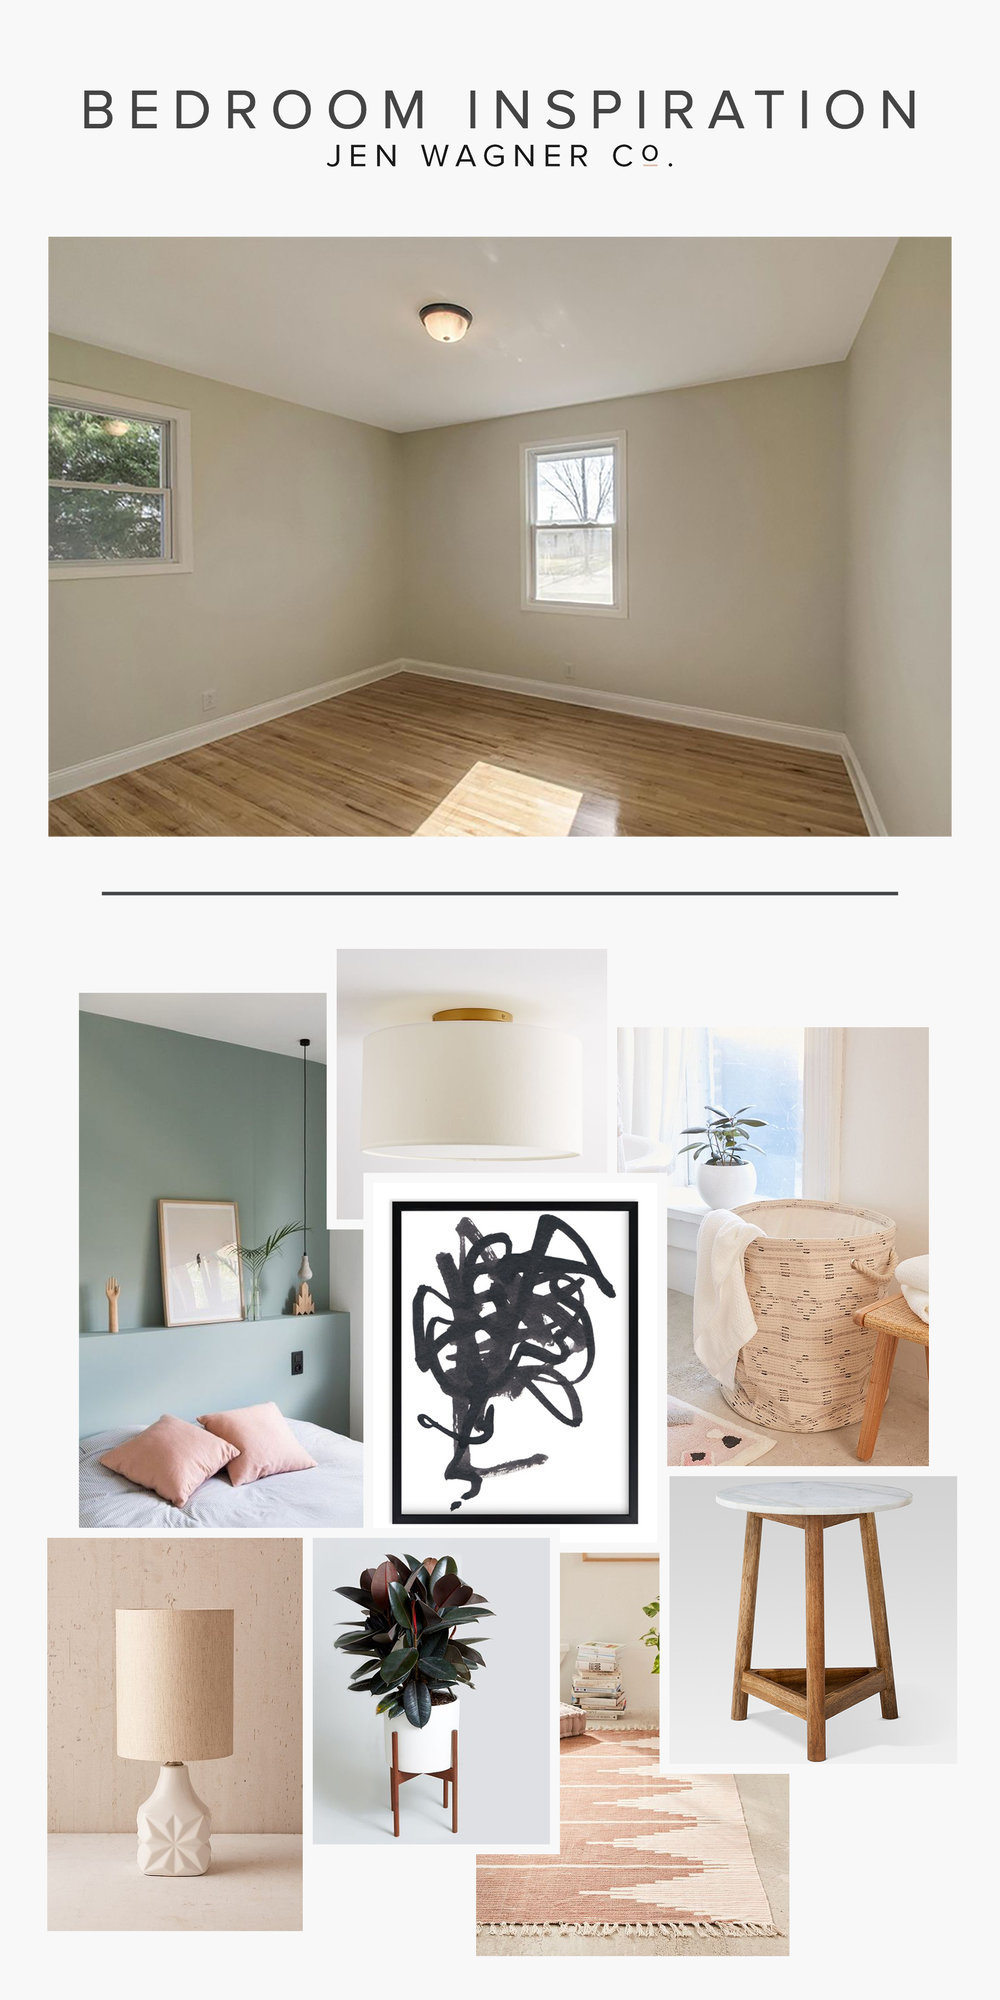 Bedroom Inspiration.jpg